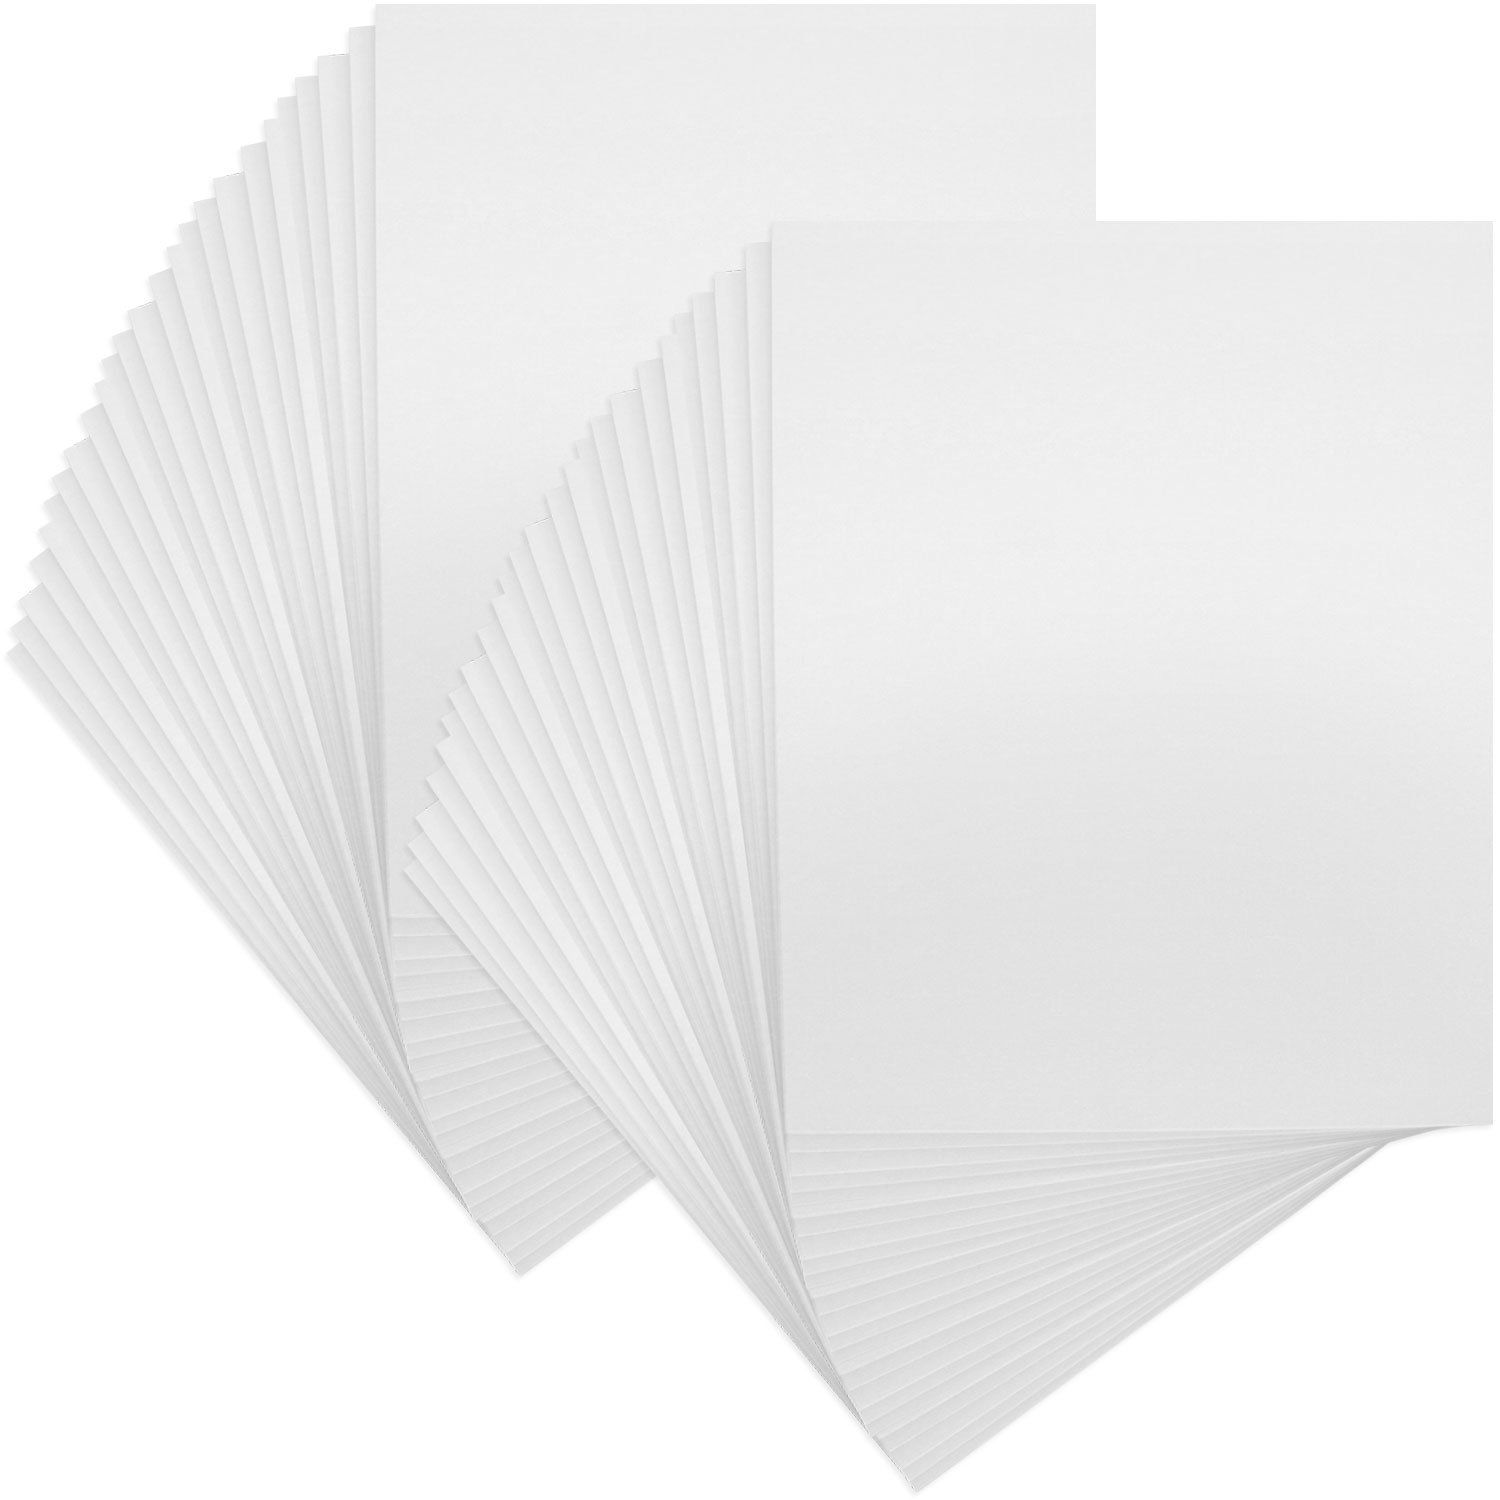 US Art Supply Art Mats Brand Premier Acid-Free 8x10 Picture Mat Matte Backerboards for Framing. Includes a Pack of 50 Backerboards by US Art Supply